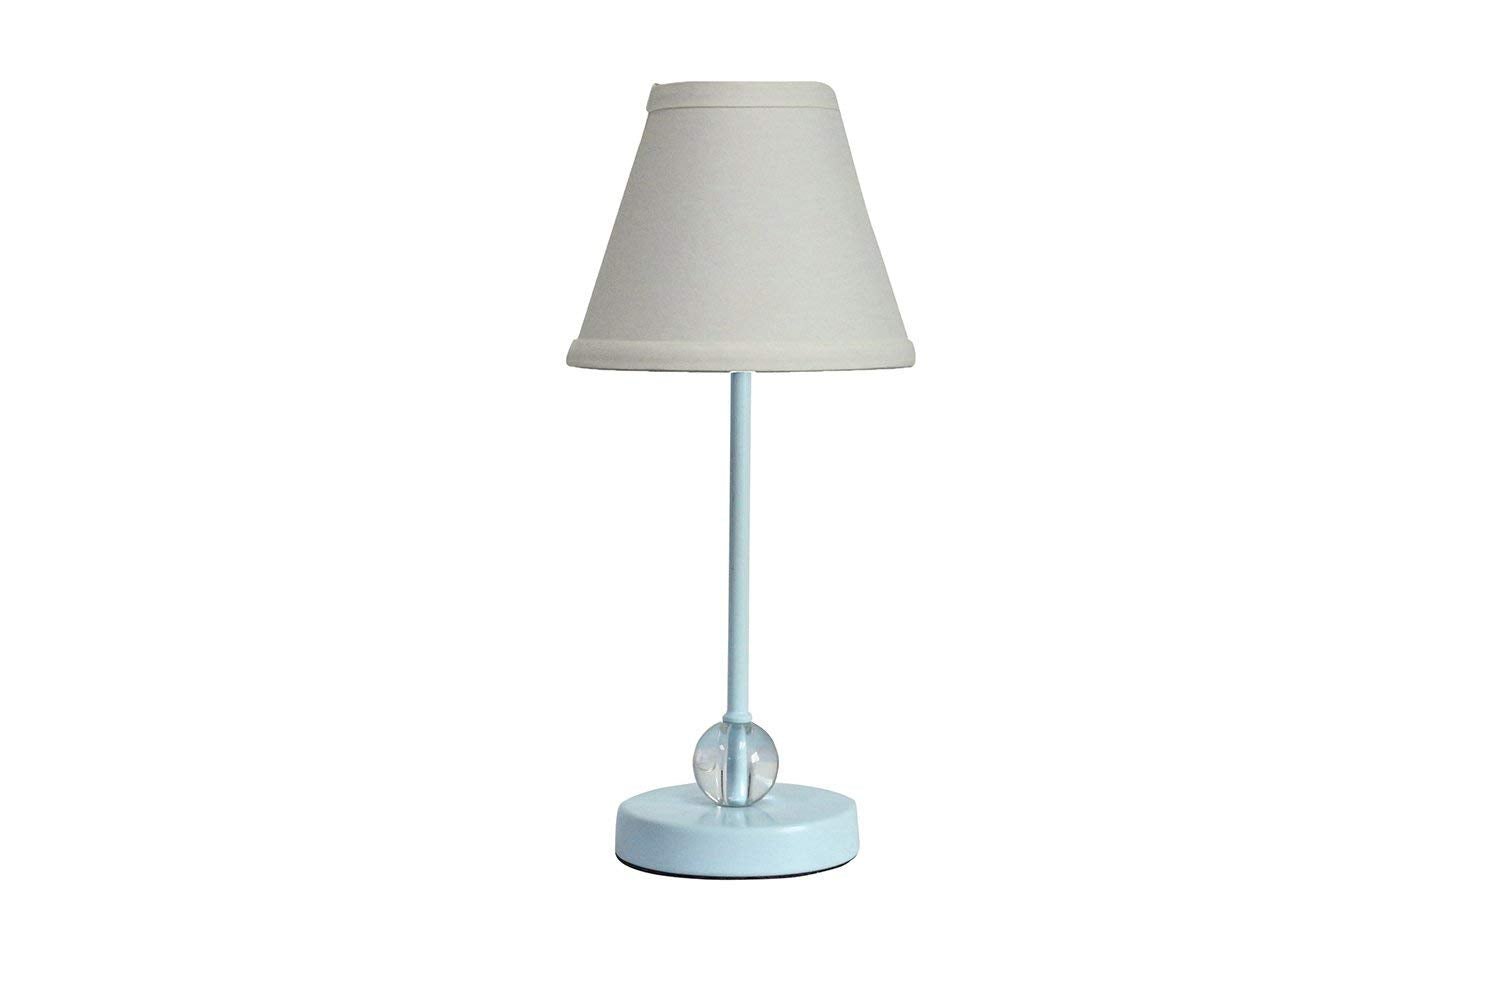 Chelsea Mini Accent Lamp with White Cotton Lamp Shade